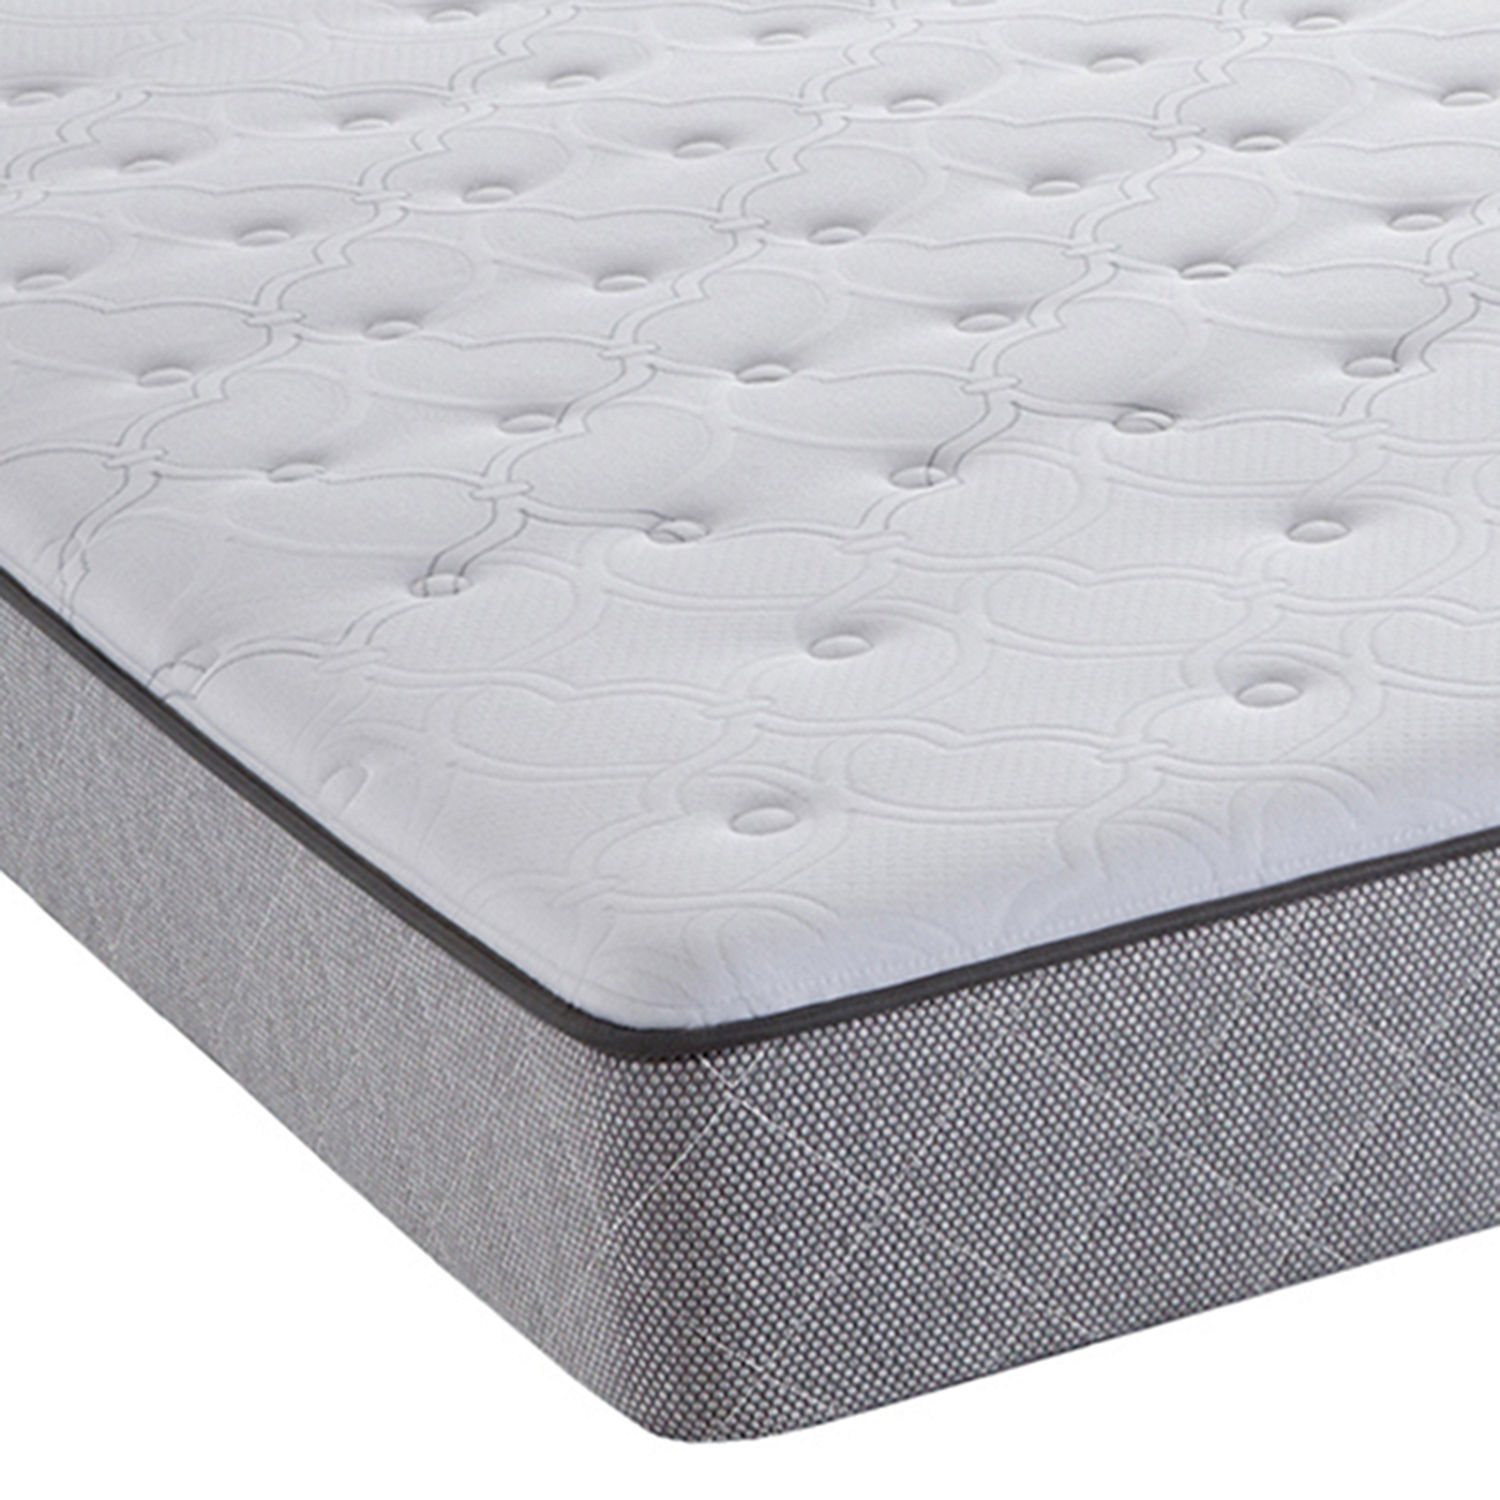 Sealy Posturepedic Anning Firm Tight Top Mattress Reviews Goodbed Com